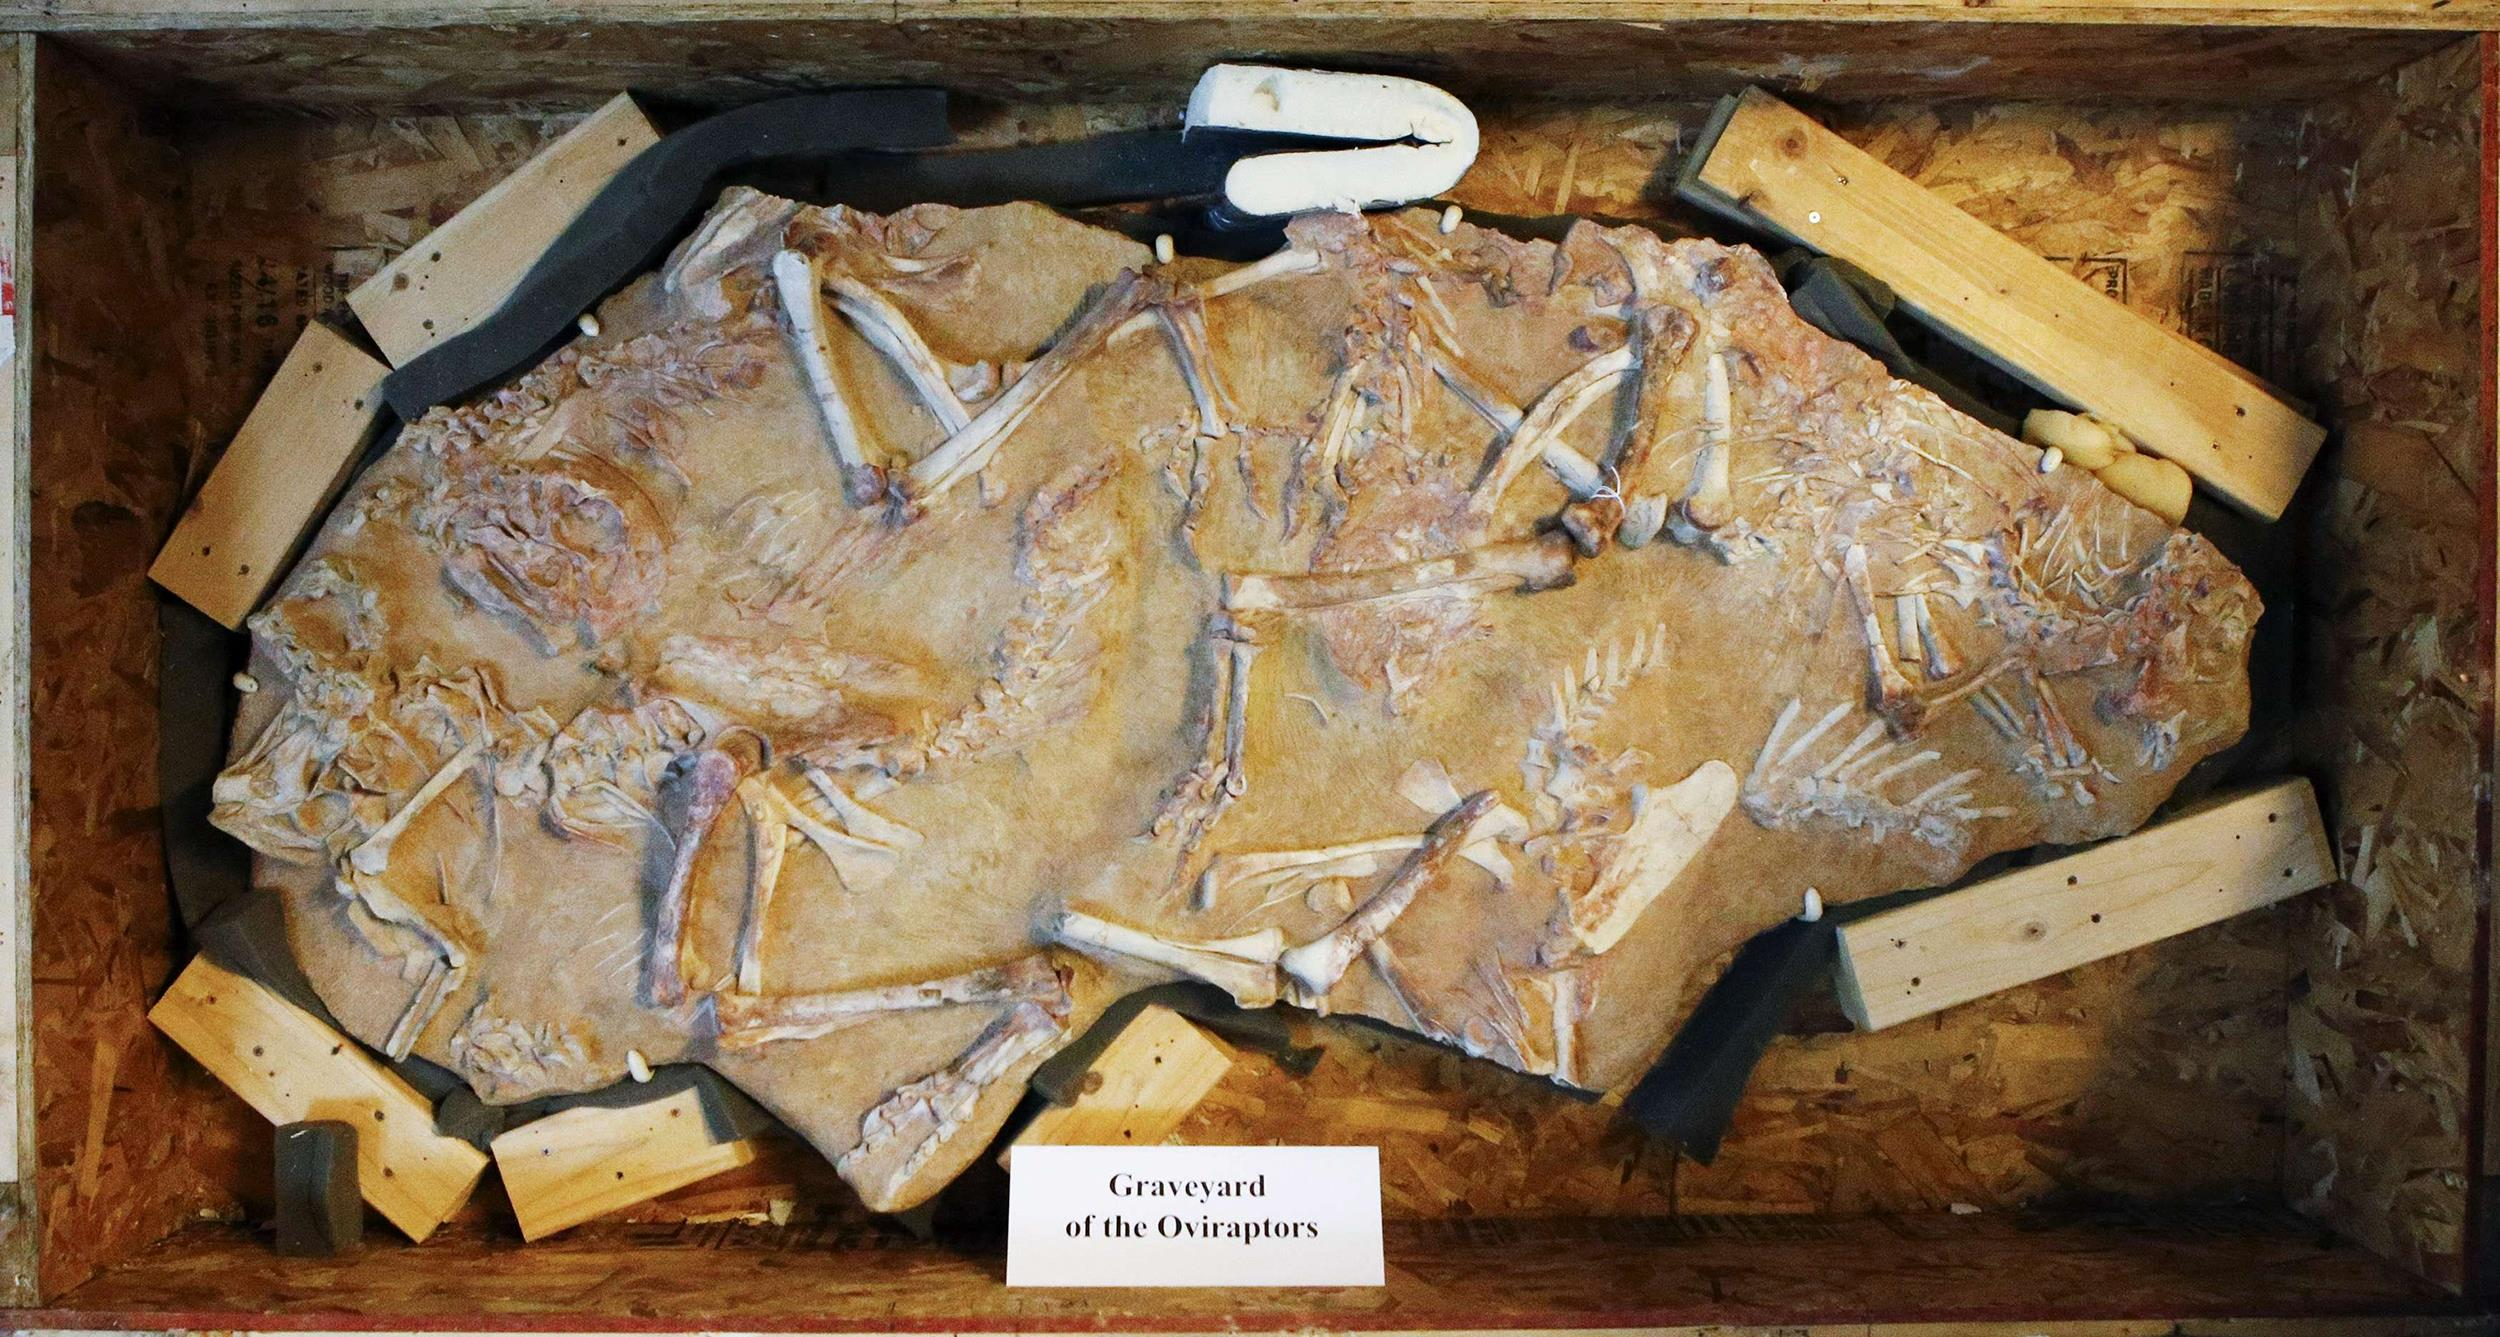 Image: Fossilized dinosaur bones are seen on a Oviraptors graveyard on display during a repatriation ceremony at the United States Attorney's Office of Southern District in New York